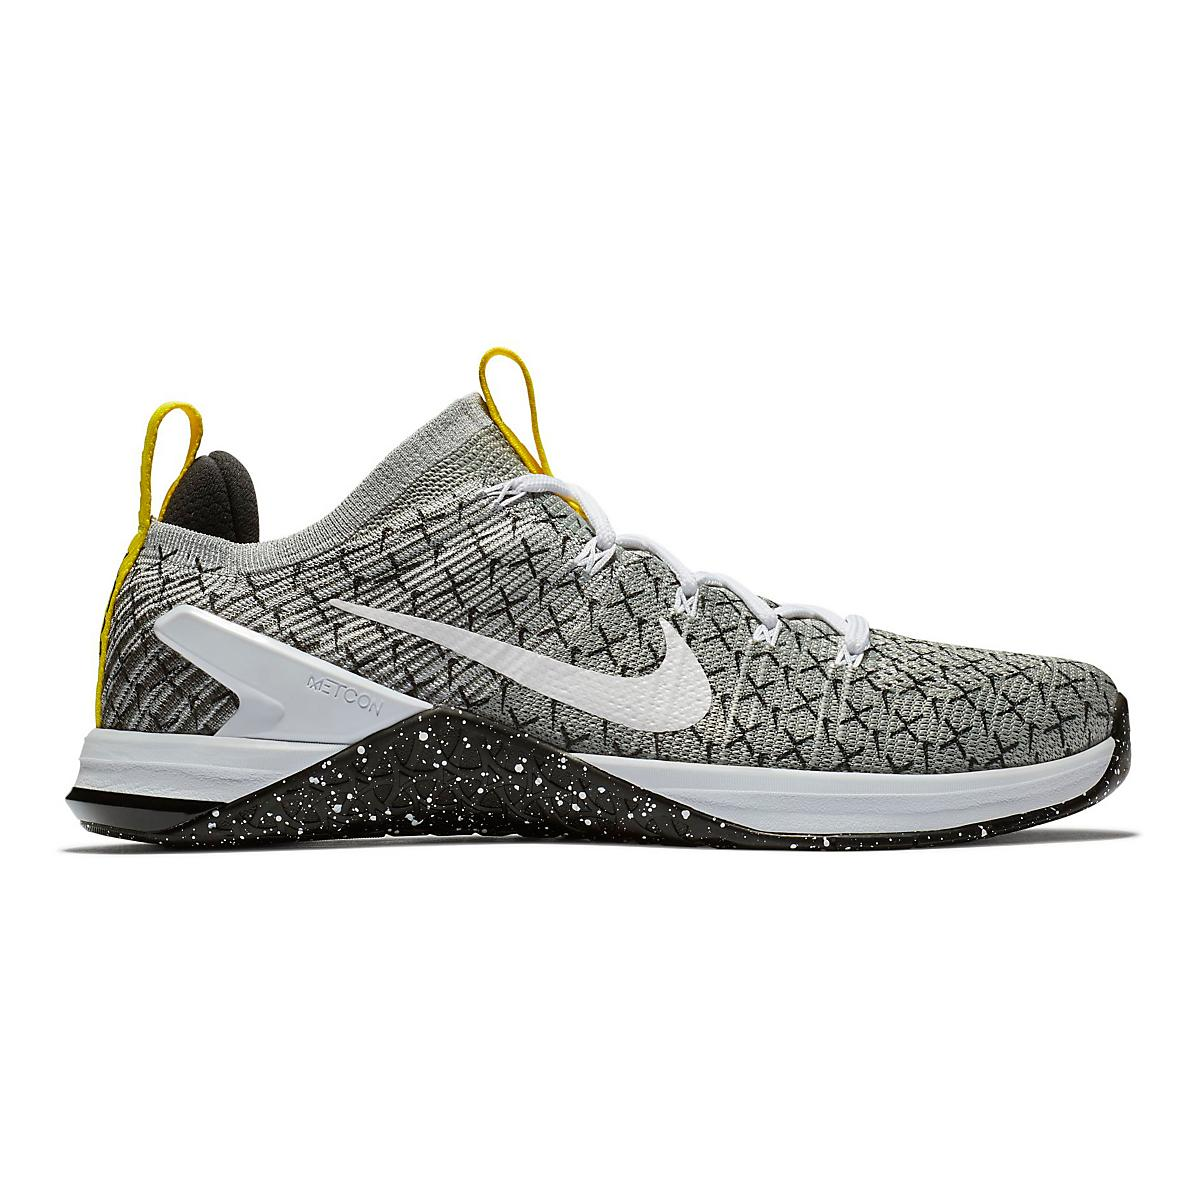 6c6e41221414 Mens Nike Metcon DSX Flyknit 2 JDQ Cross Training Shoe at Road Runner Sports